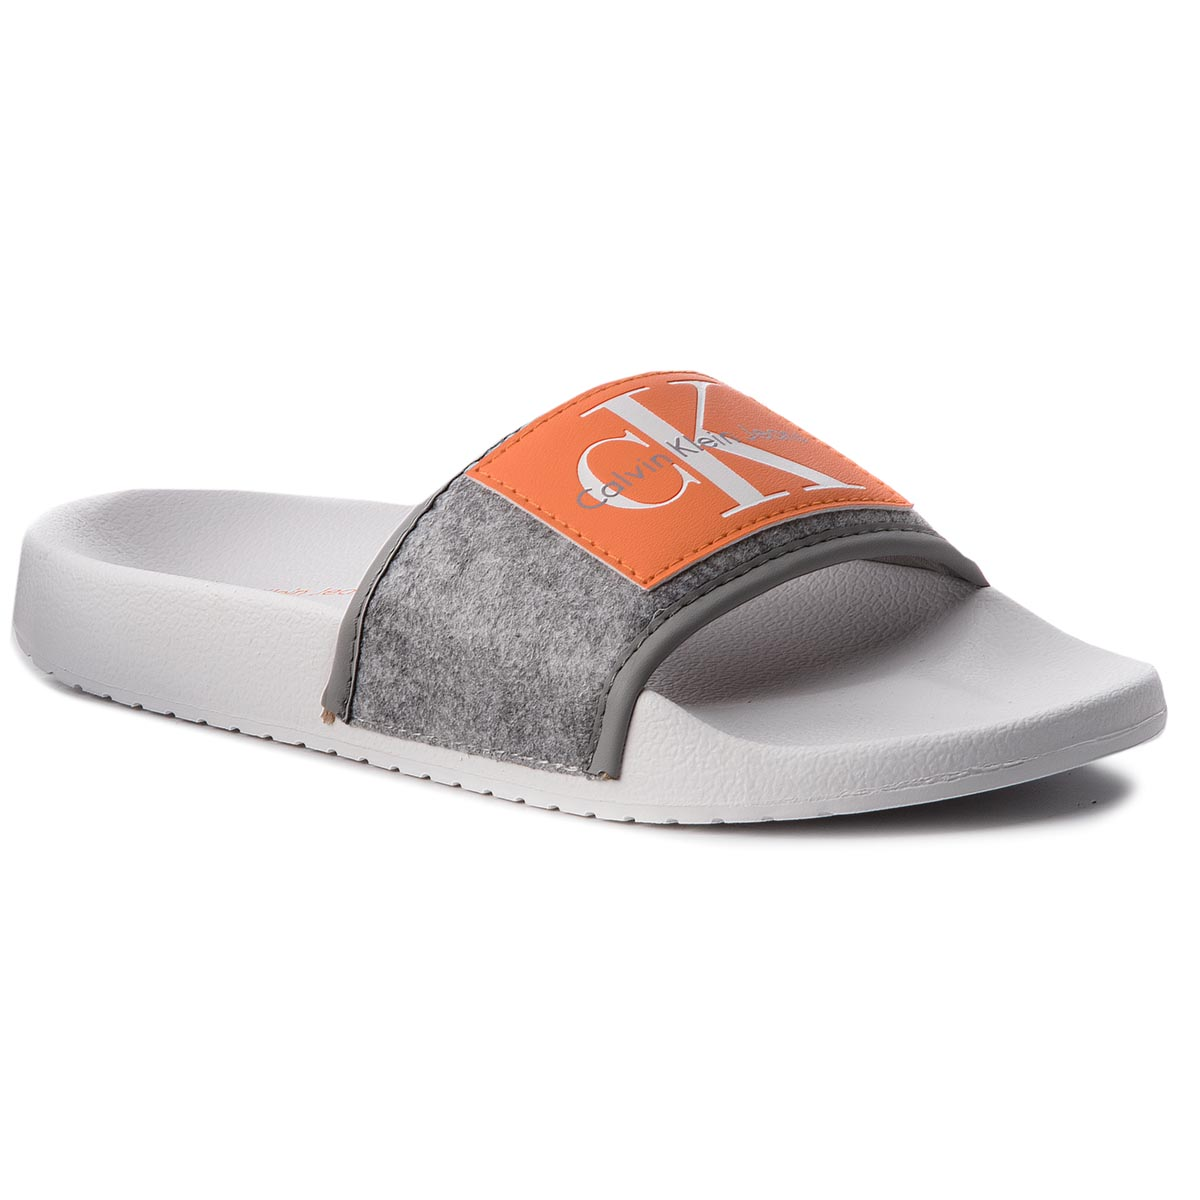 Klapki CALVIN KLEIN JEANS - Cherie RE9810 Airforce Grey